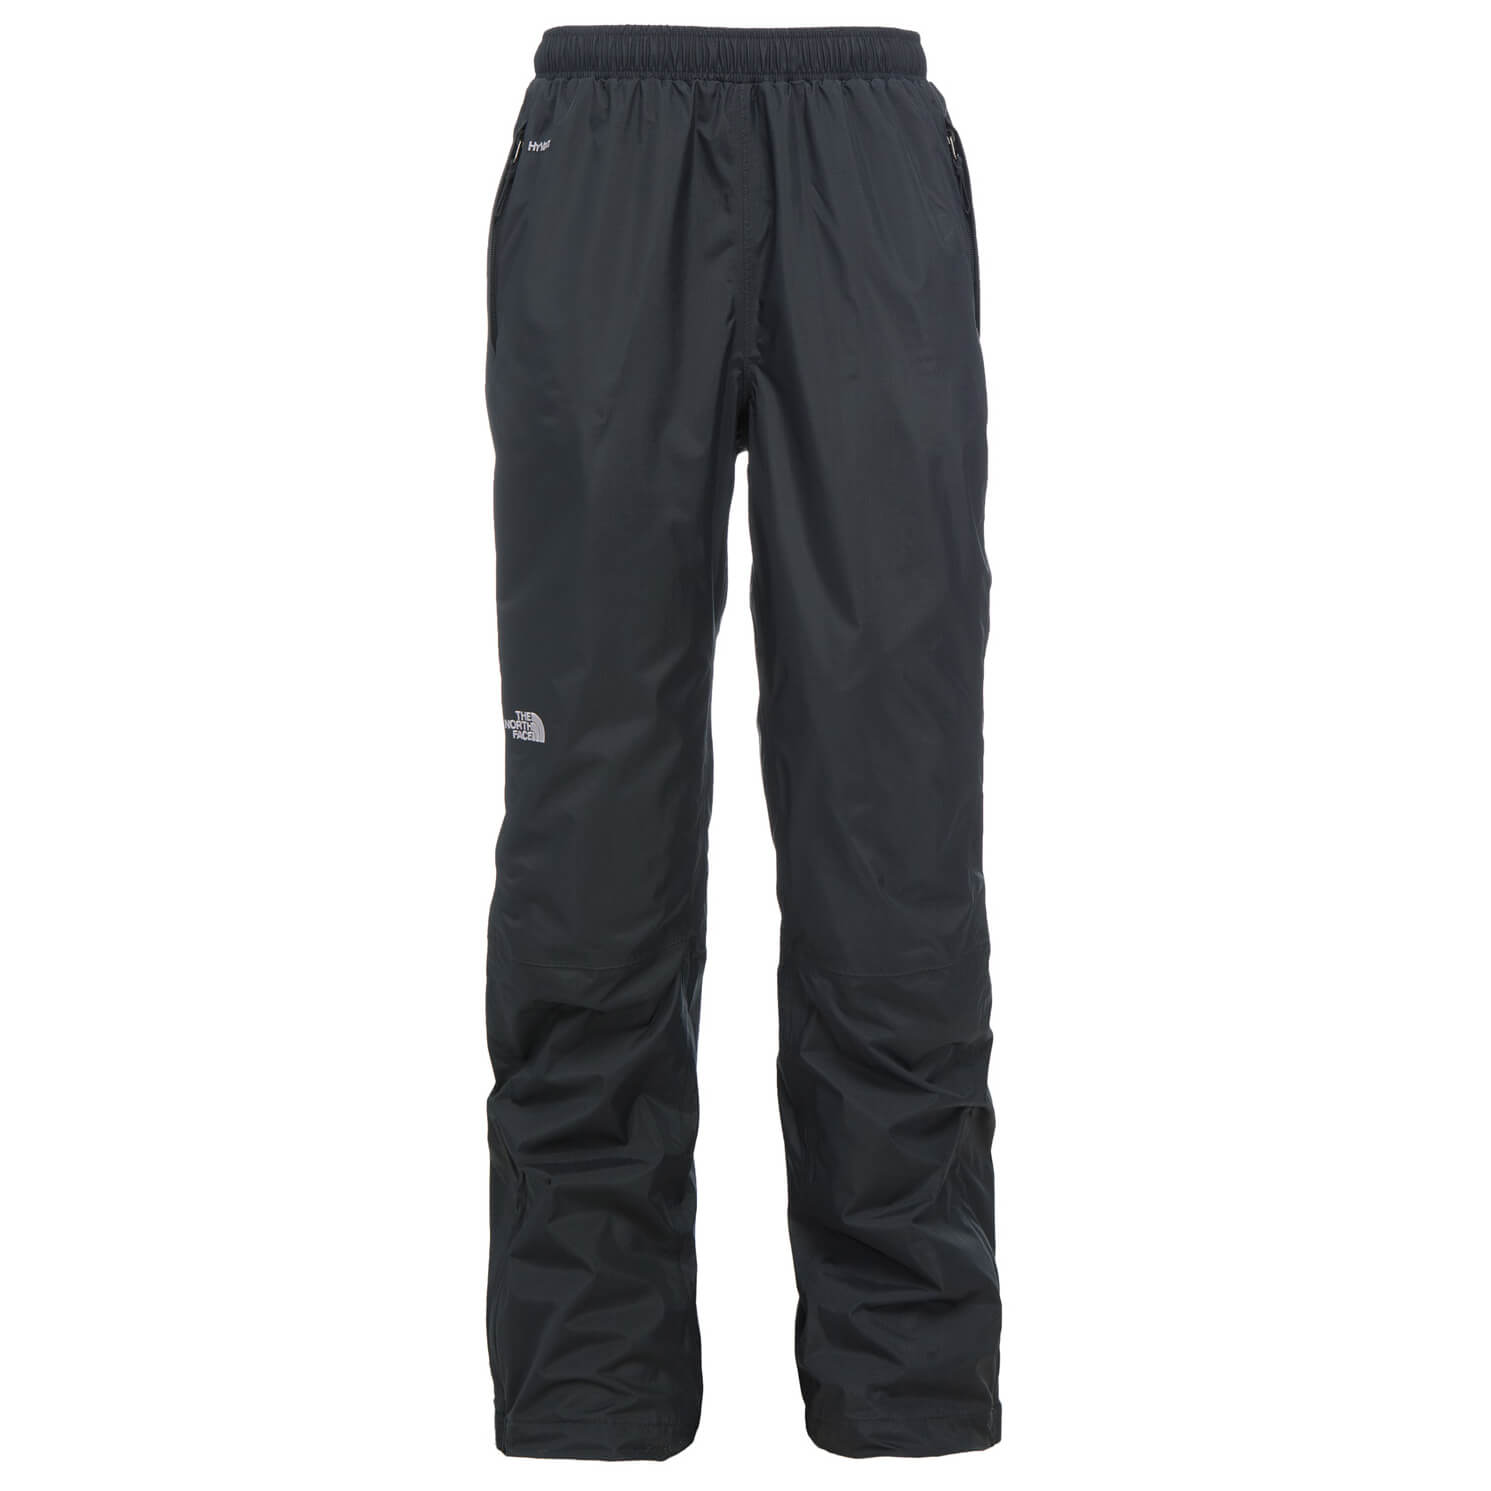 meet super quality attractivefashion The North Face - Women's Resolve Pant - Waterproof trousers - TNF Black |  XS - Regular